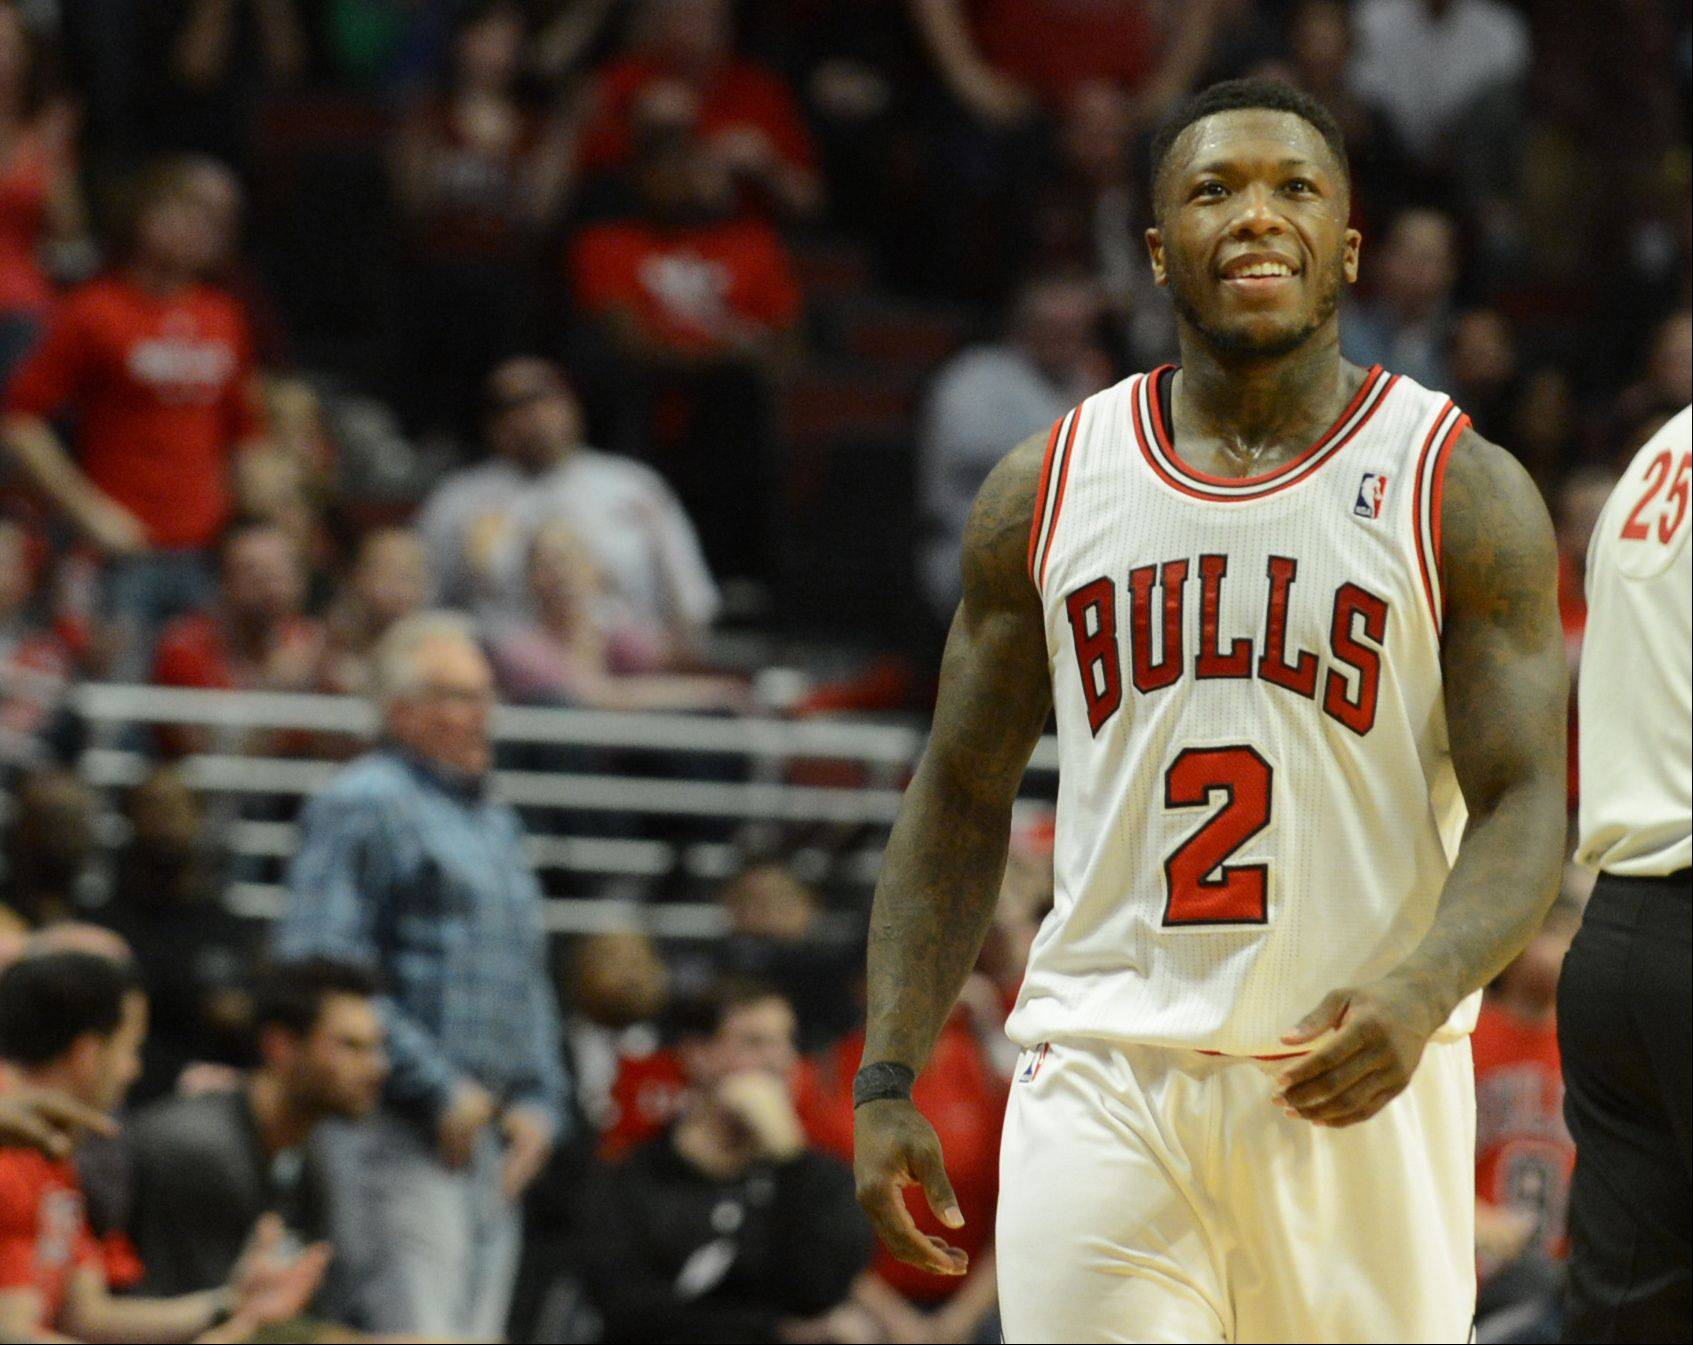 Nate Robinson is all smiles as he heads up court after making a basket in the second overtime Saturday during game 4 of the first round playoff game against the Brooklyn Nets at the United Center. The Bulls won in triple overtime 142-134